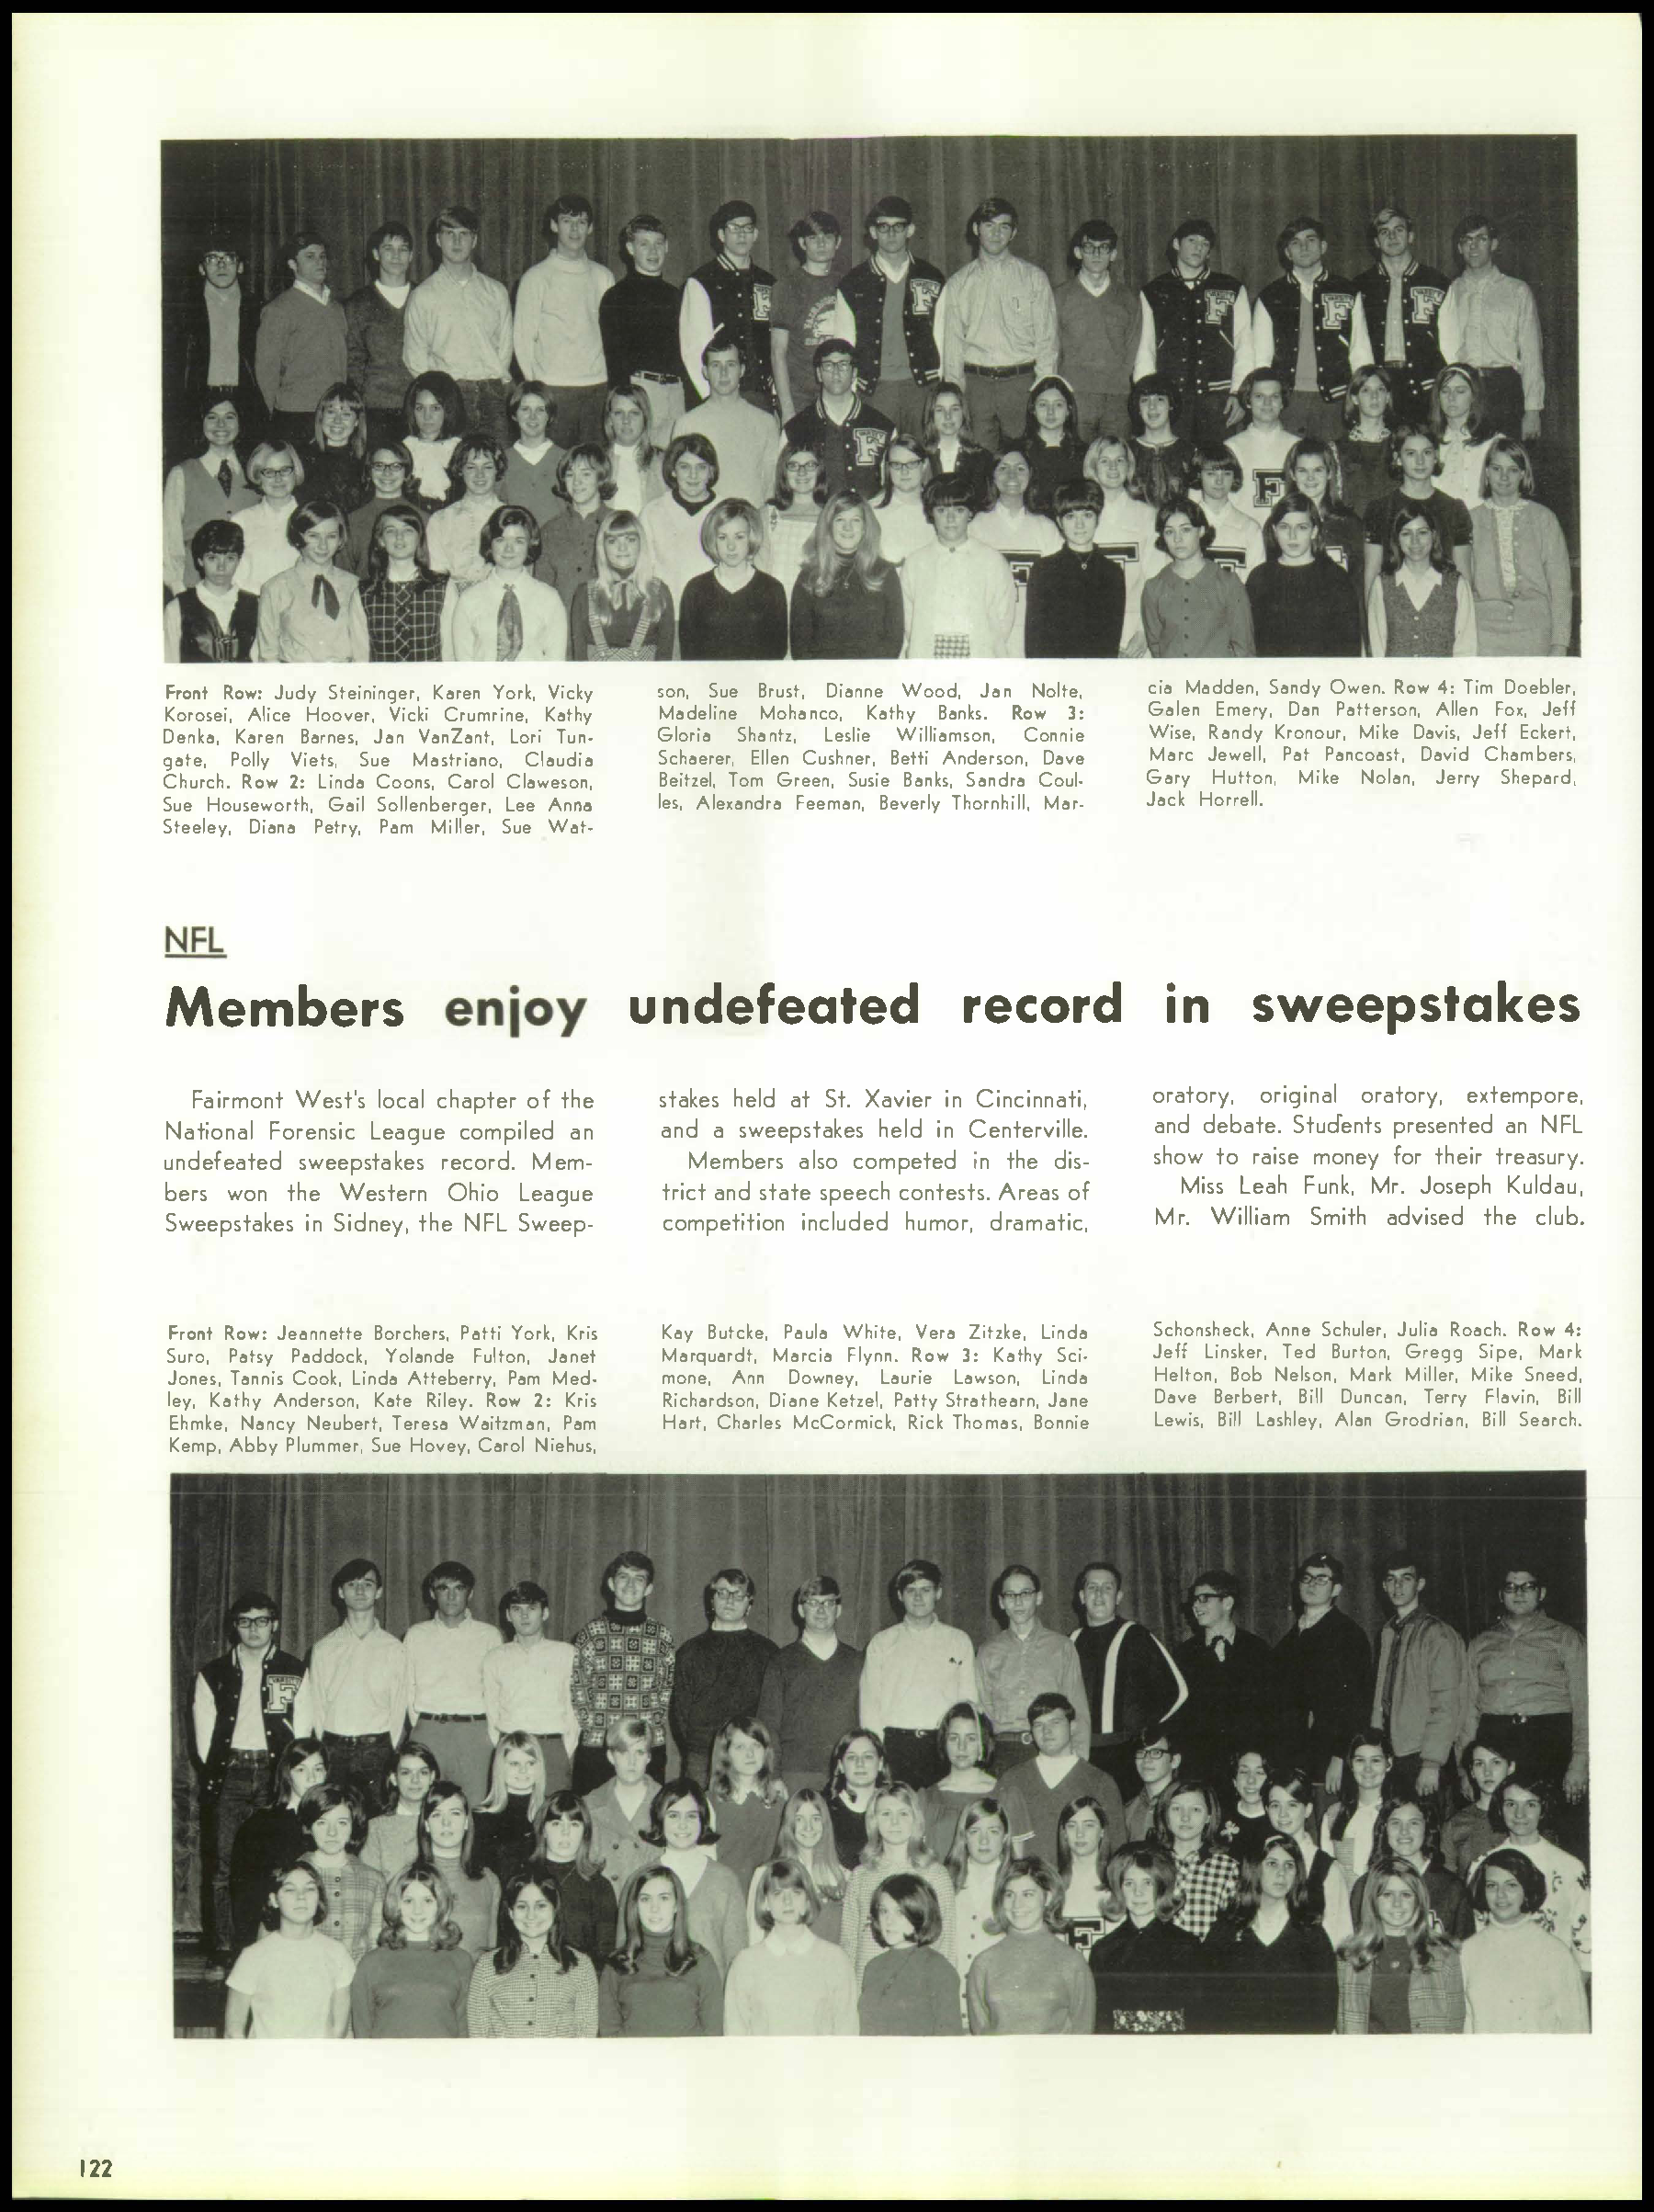 Yolande Fox Png - Page 126 - Yearbooks - Dayton Remembers: Preserving the History of ...